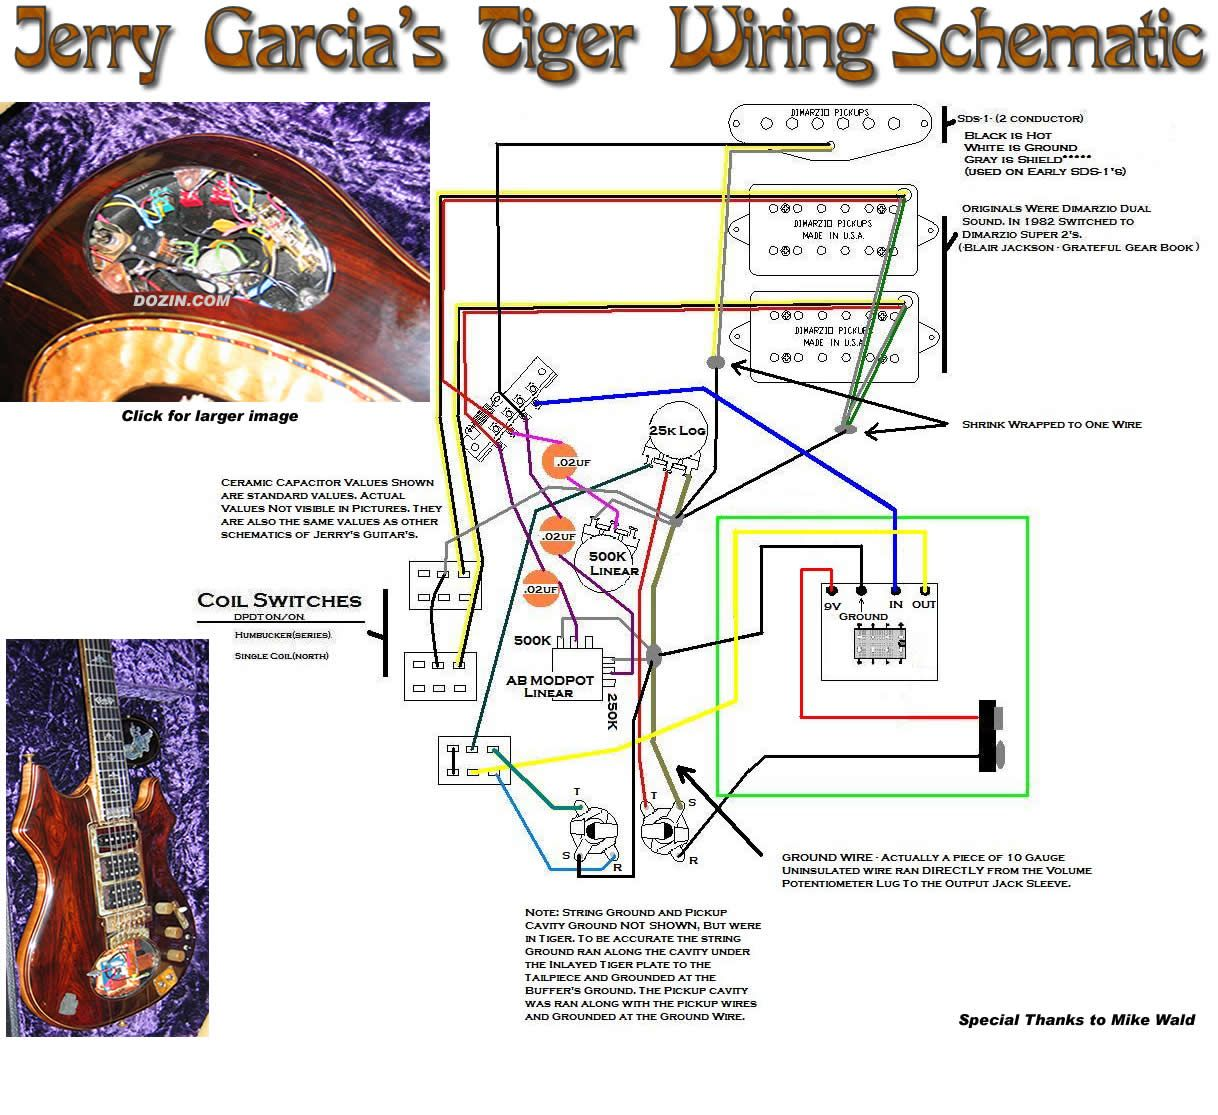 jerry garcia s tiger schematic mod music guitar kits telecaster guitar guitar pickups  [ 1218 x 1115 Pixel ]